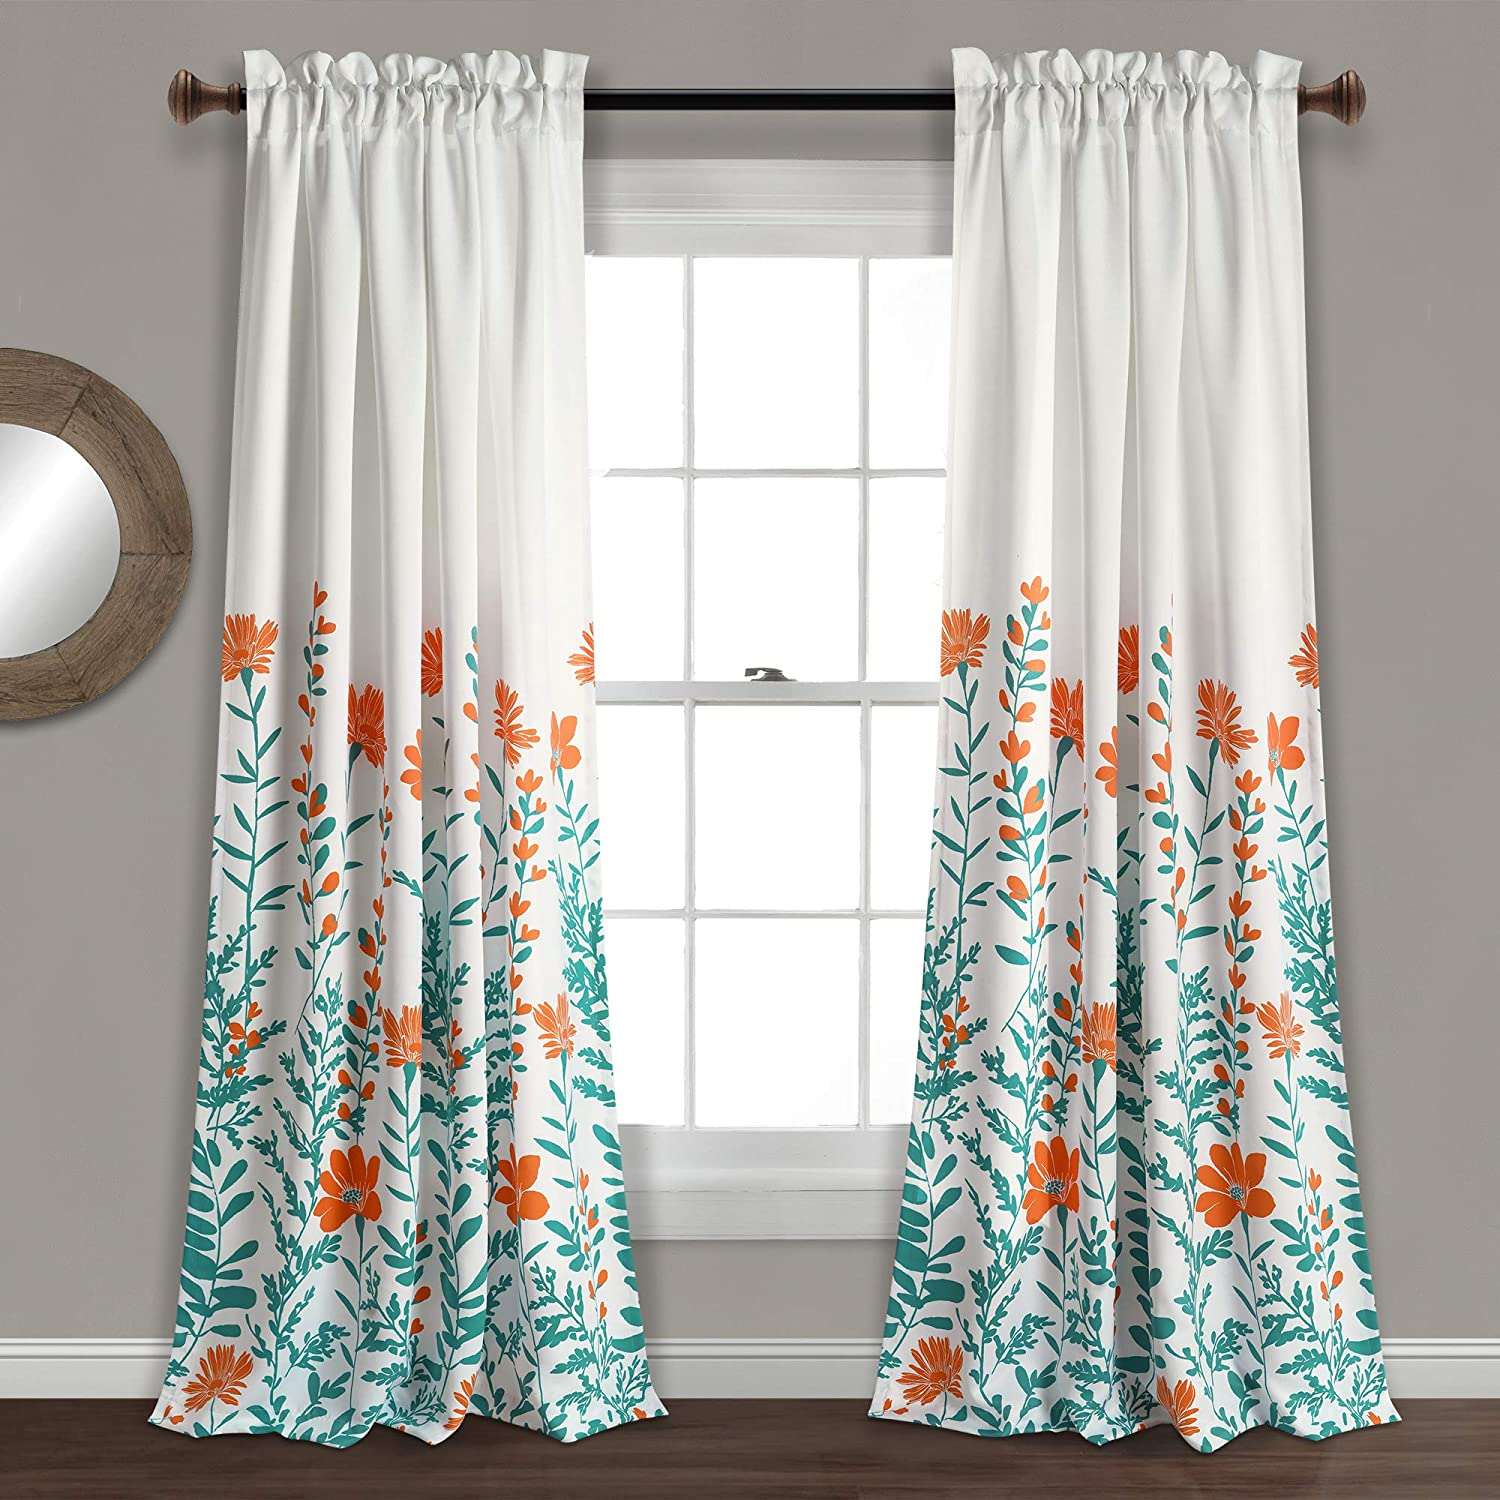 "Lush Decor Aprile Room Darkening Curtains-Floral Leaf Design Window Panel Drapes Set for Living, Dining, Bedroom (Pair), 84"" x 52"", Turquoise, Orange and Turquiose"